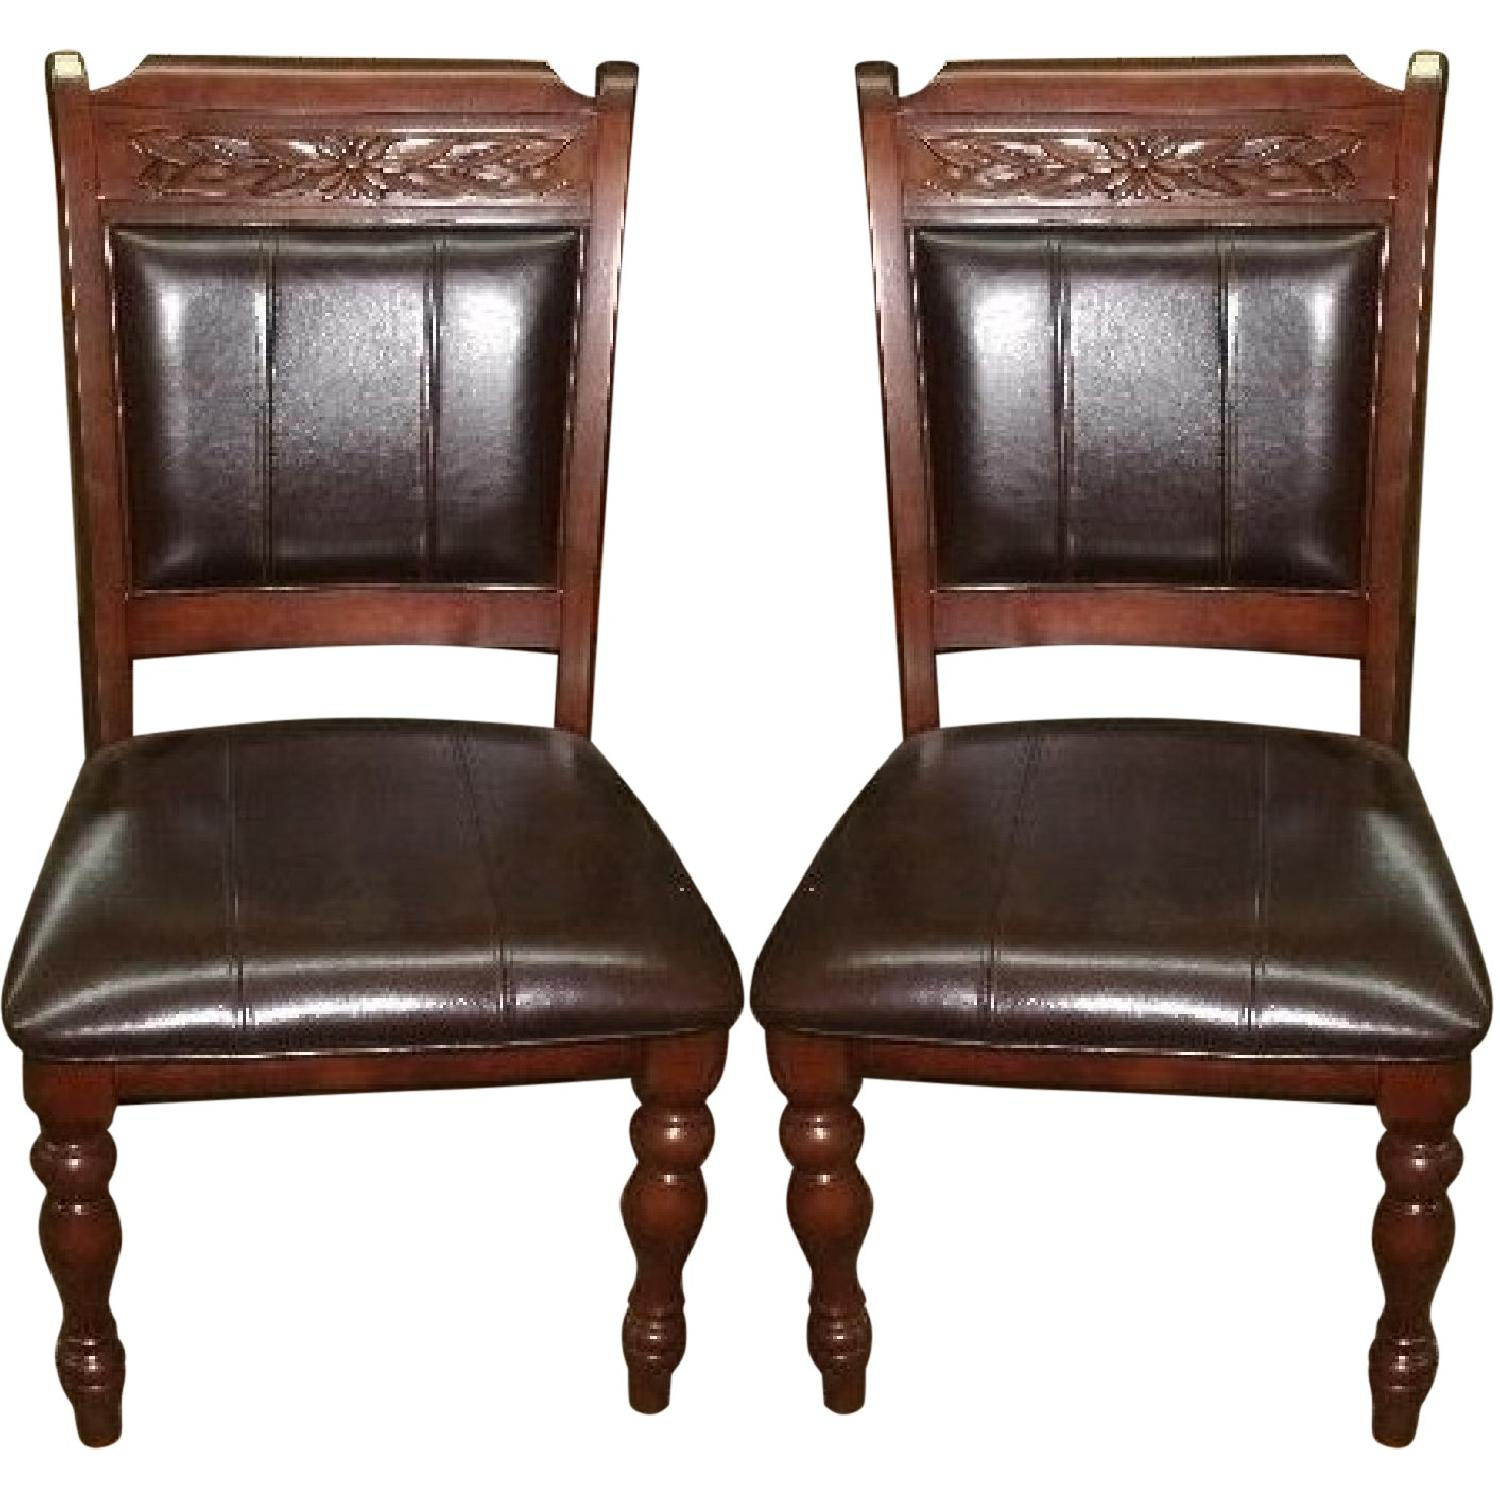 Wood Dining Accent Chairs Set of 2 AptDeco